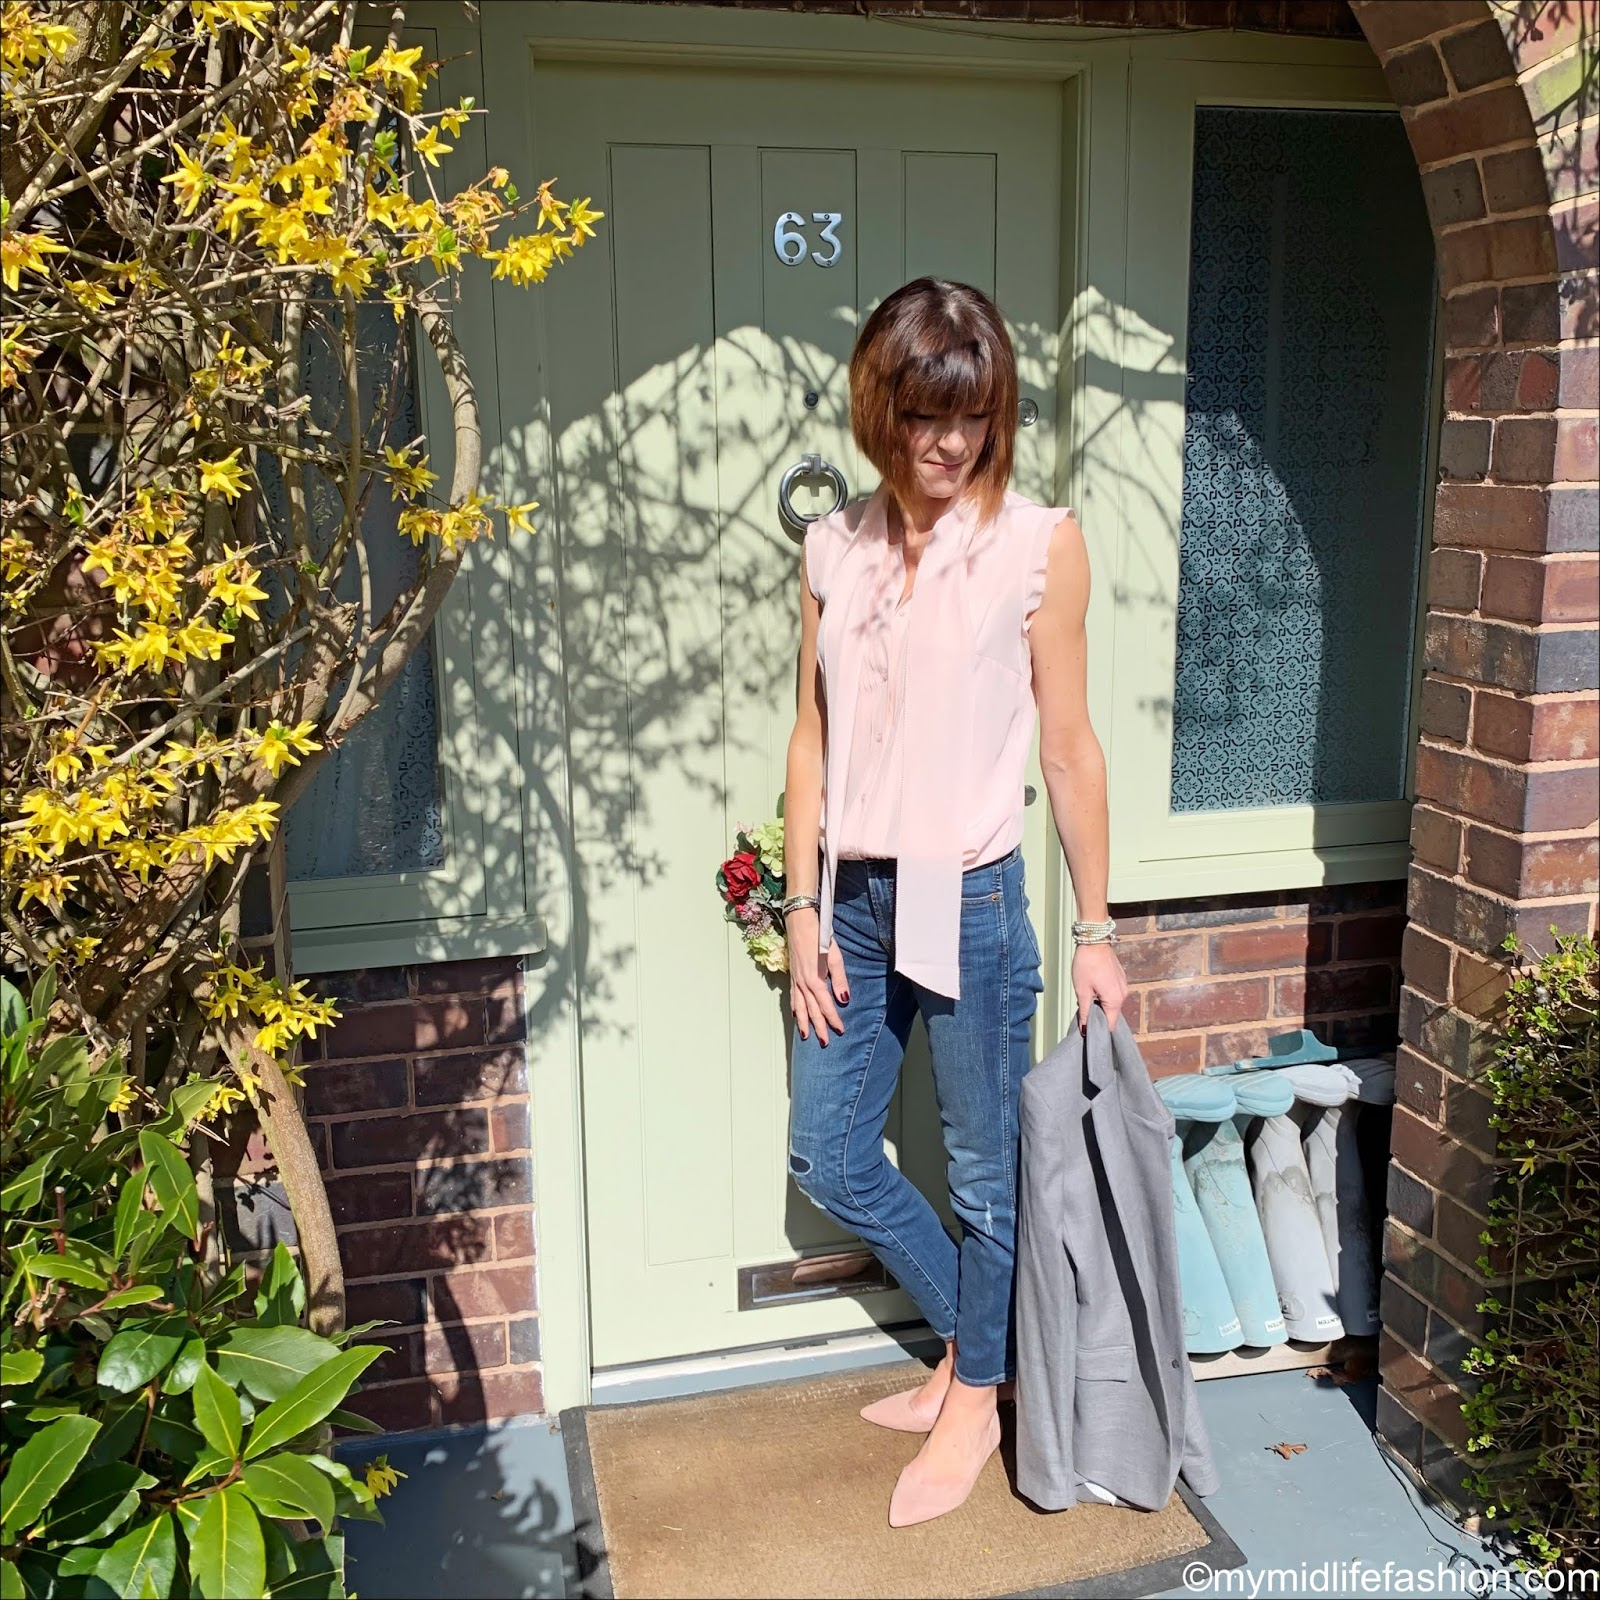 my midlife fashion, j crew vintage straight jean in rip and repair, h and m pointed ballet pumps, j crew rhodes blazer, peter hahn eta raasch sleeveless blouse in 100 percent silk